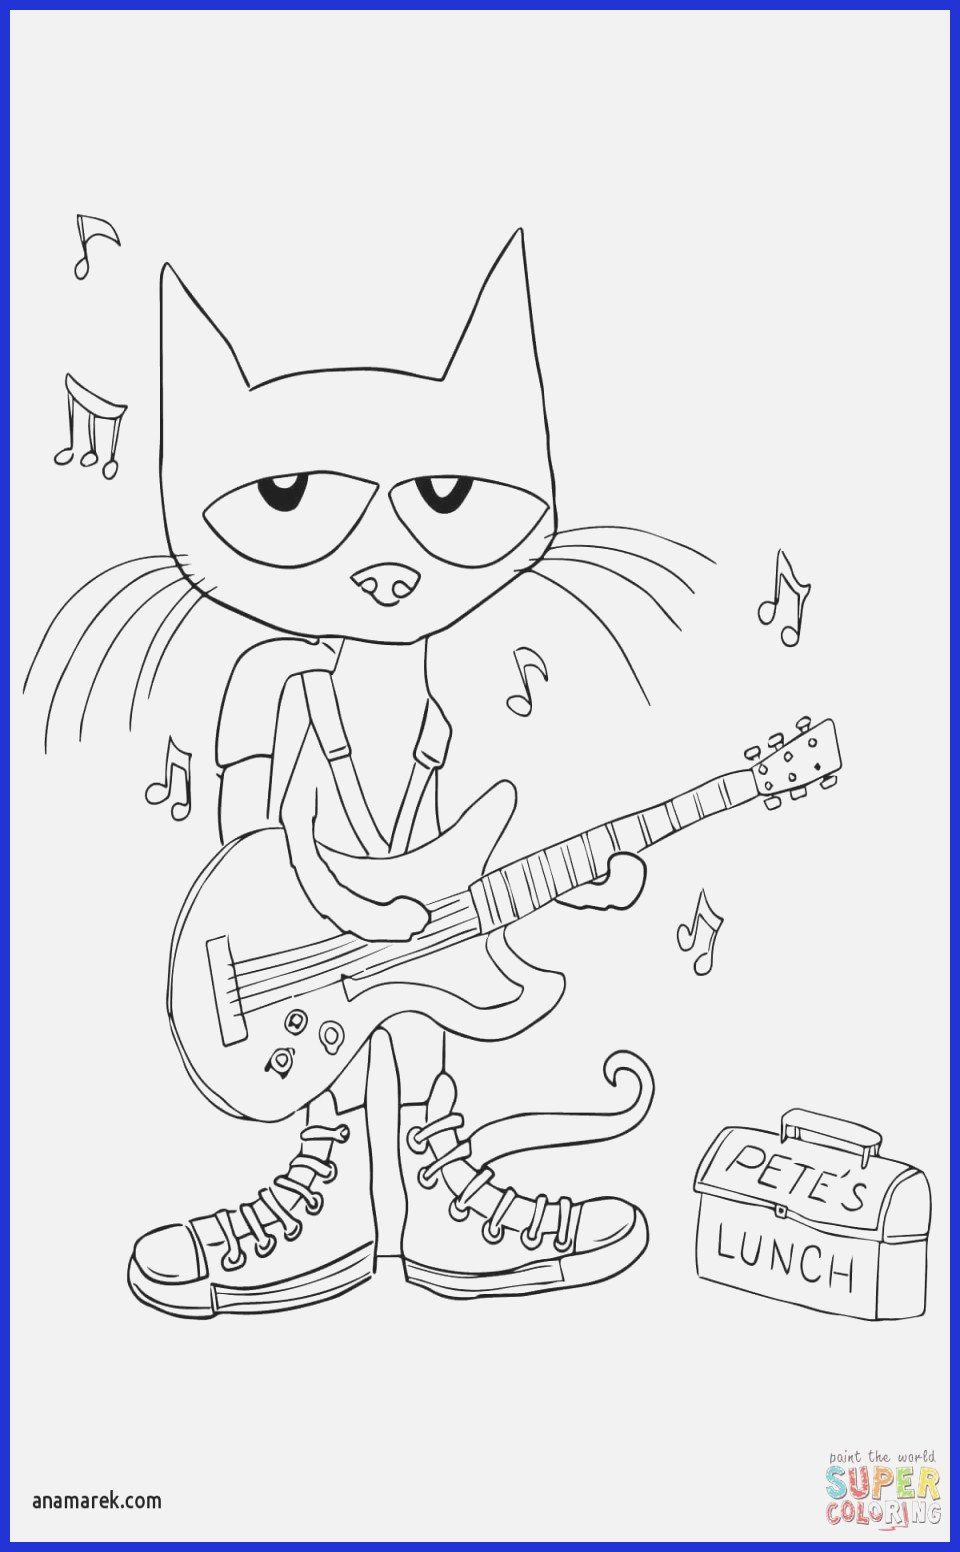 Pete the Cat Coloring Page New 16 Coloring Pages Cats in